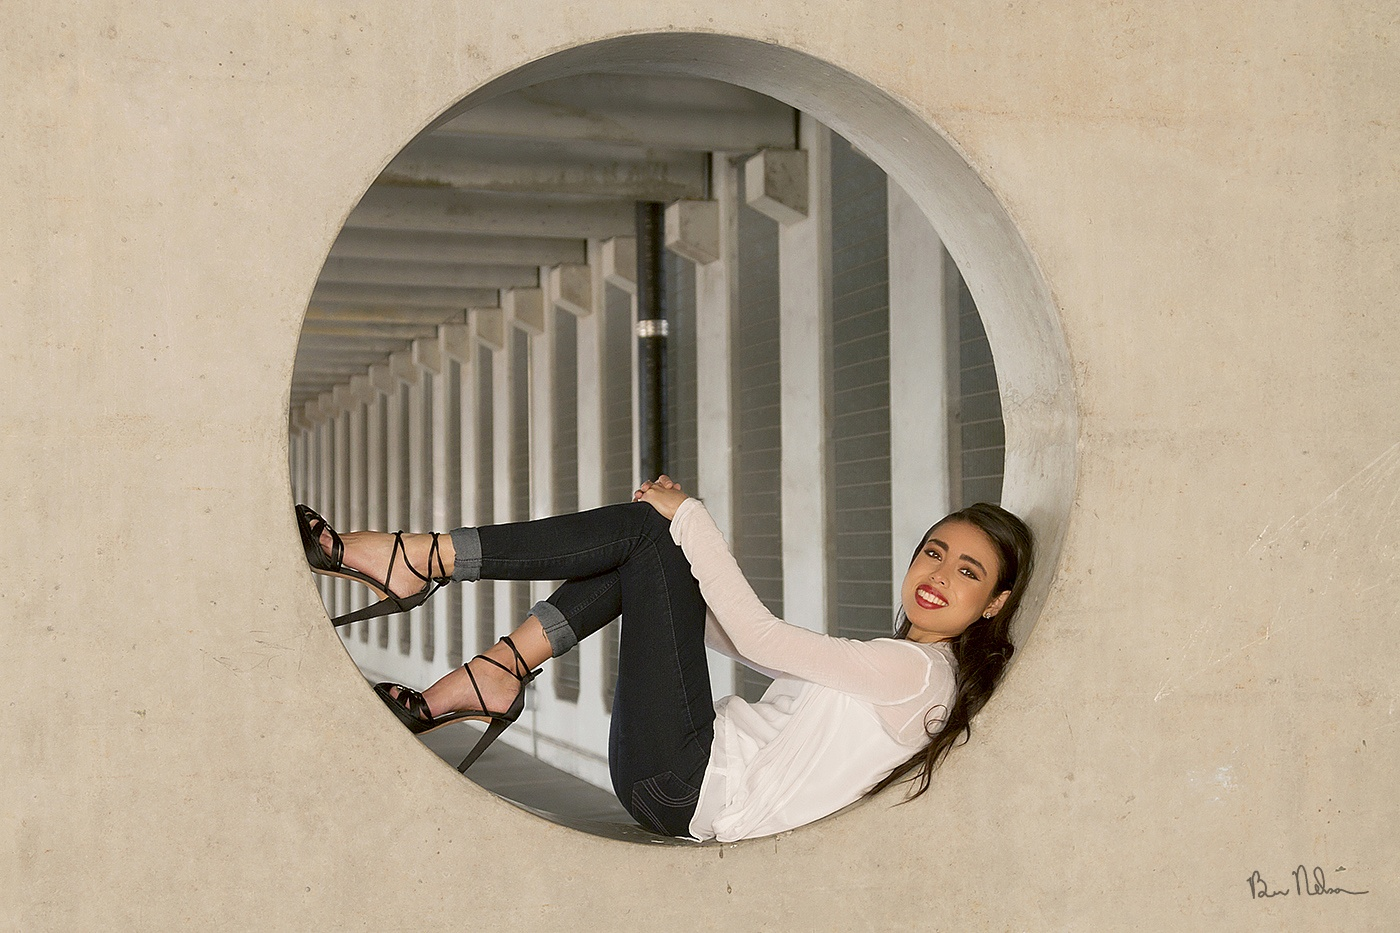 A collection of Senior Pictures and Portraits in the Springfield Missouri area by Ben Nelson - Cecilia senior portrait in parking garage 2016